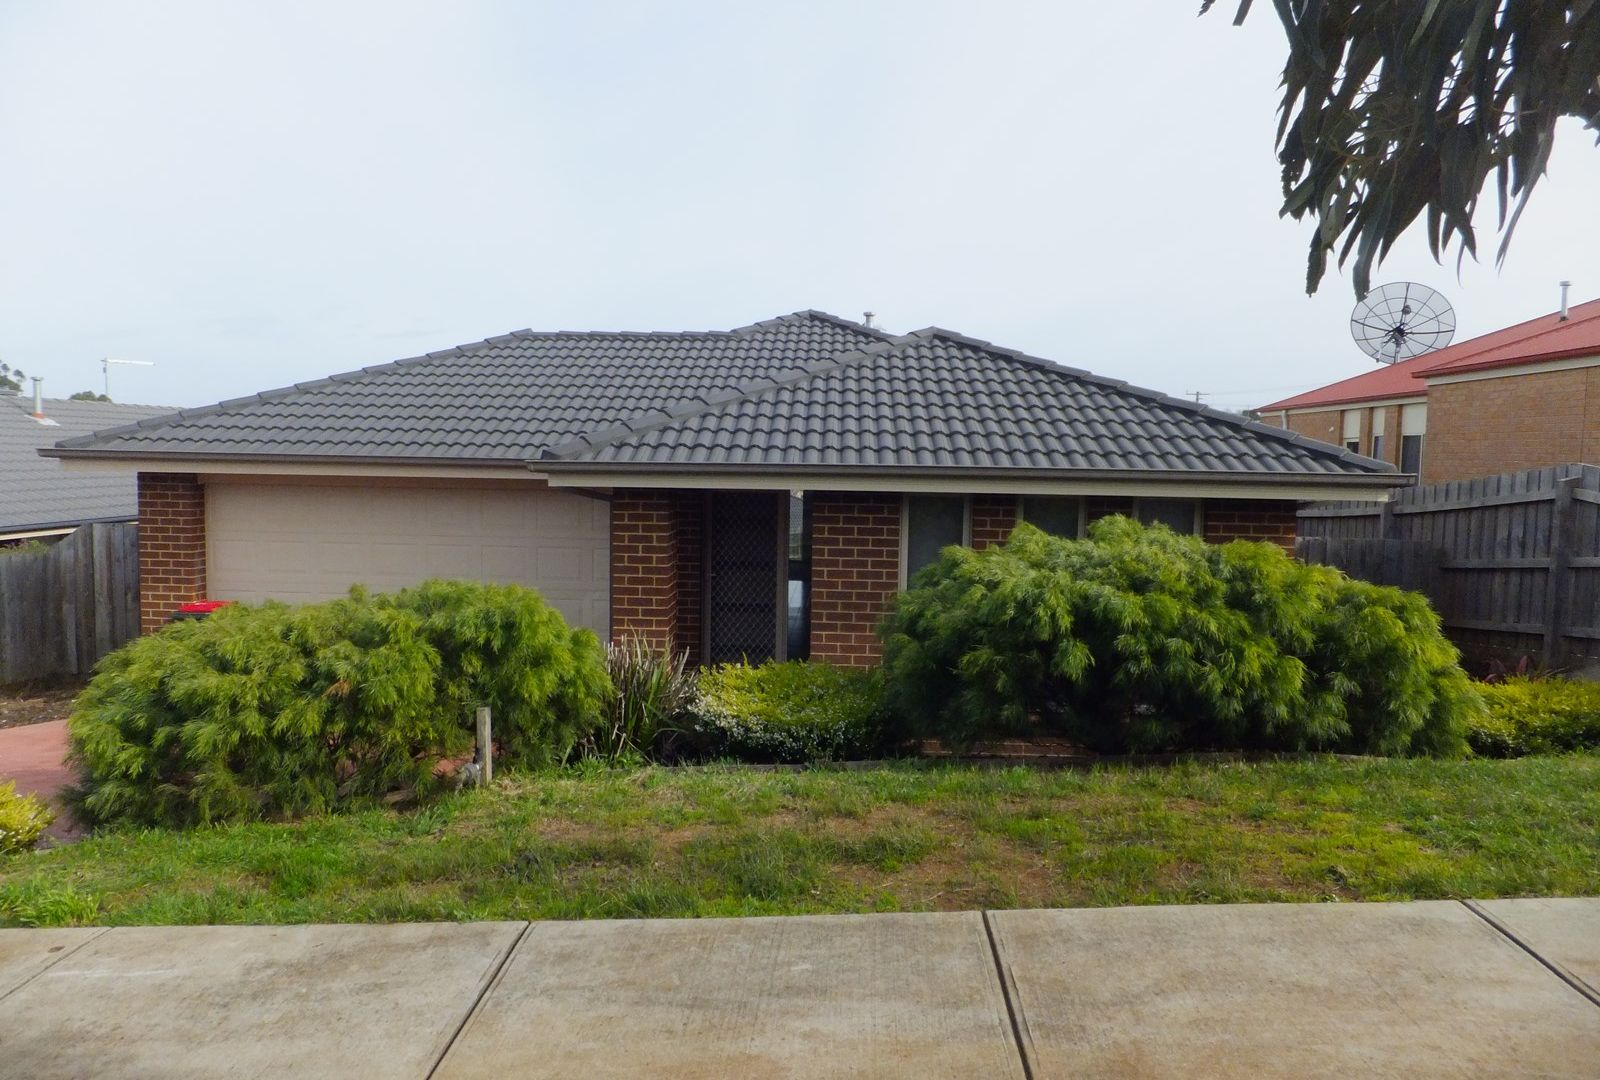 11 Friend Street, Warragul VIC 3820, Image 4